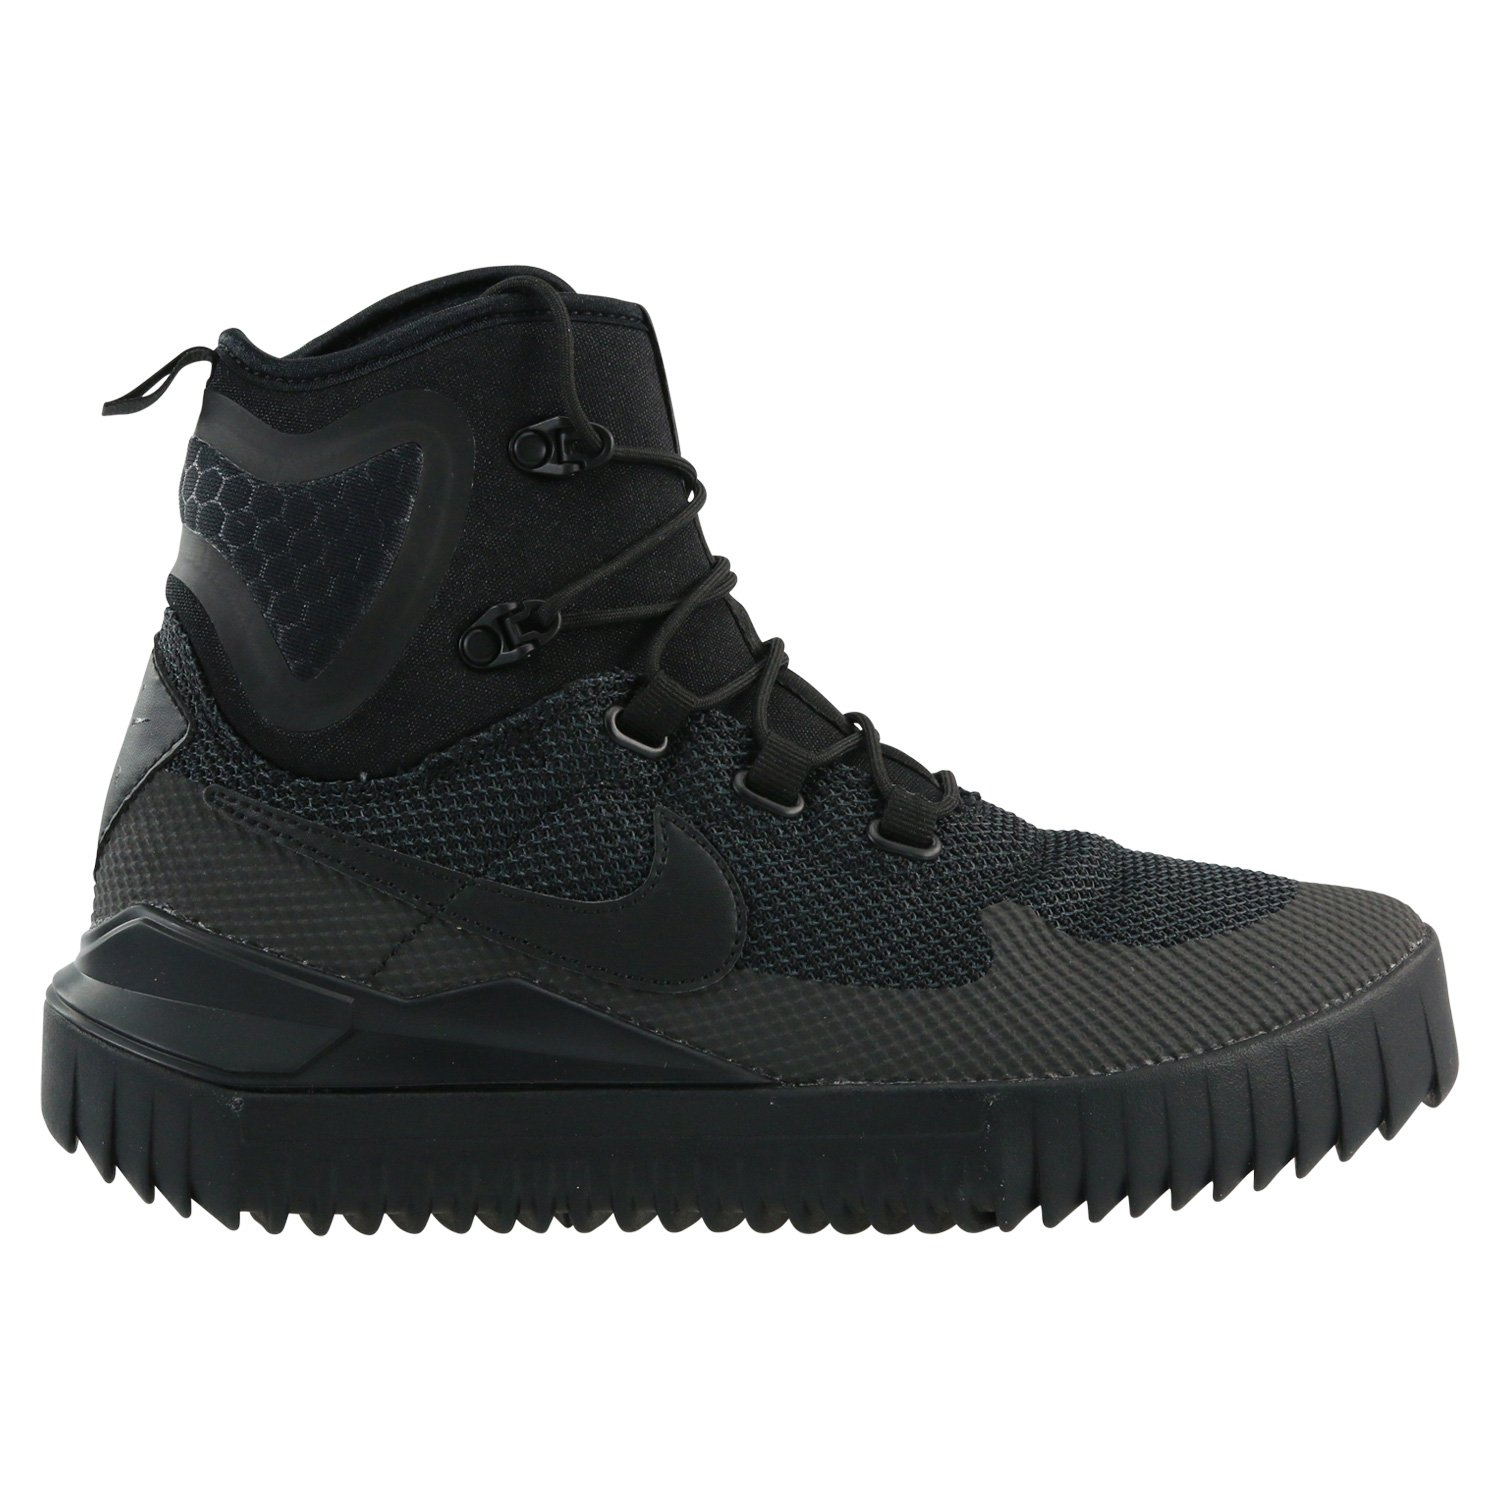 Nike Mens Air Wild Mid Boots Black/Black-Anthracite 916819-001 Size 12